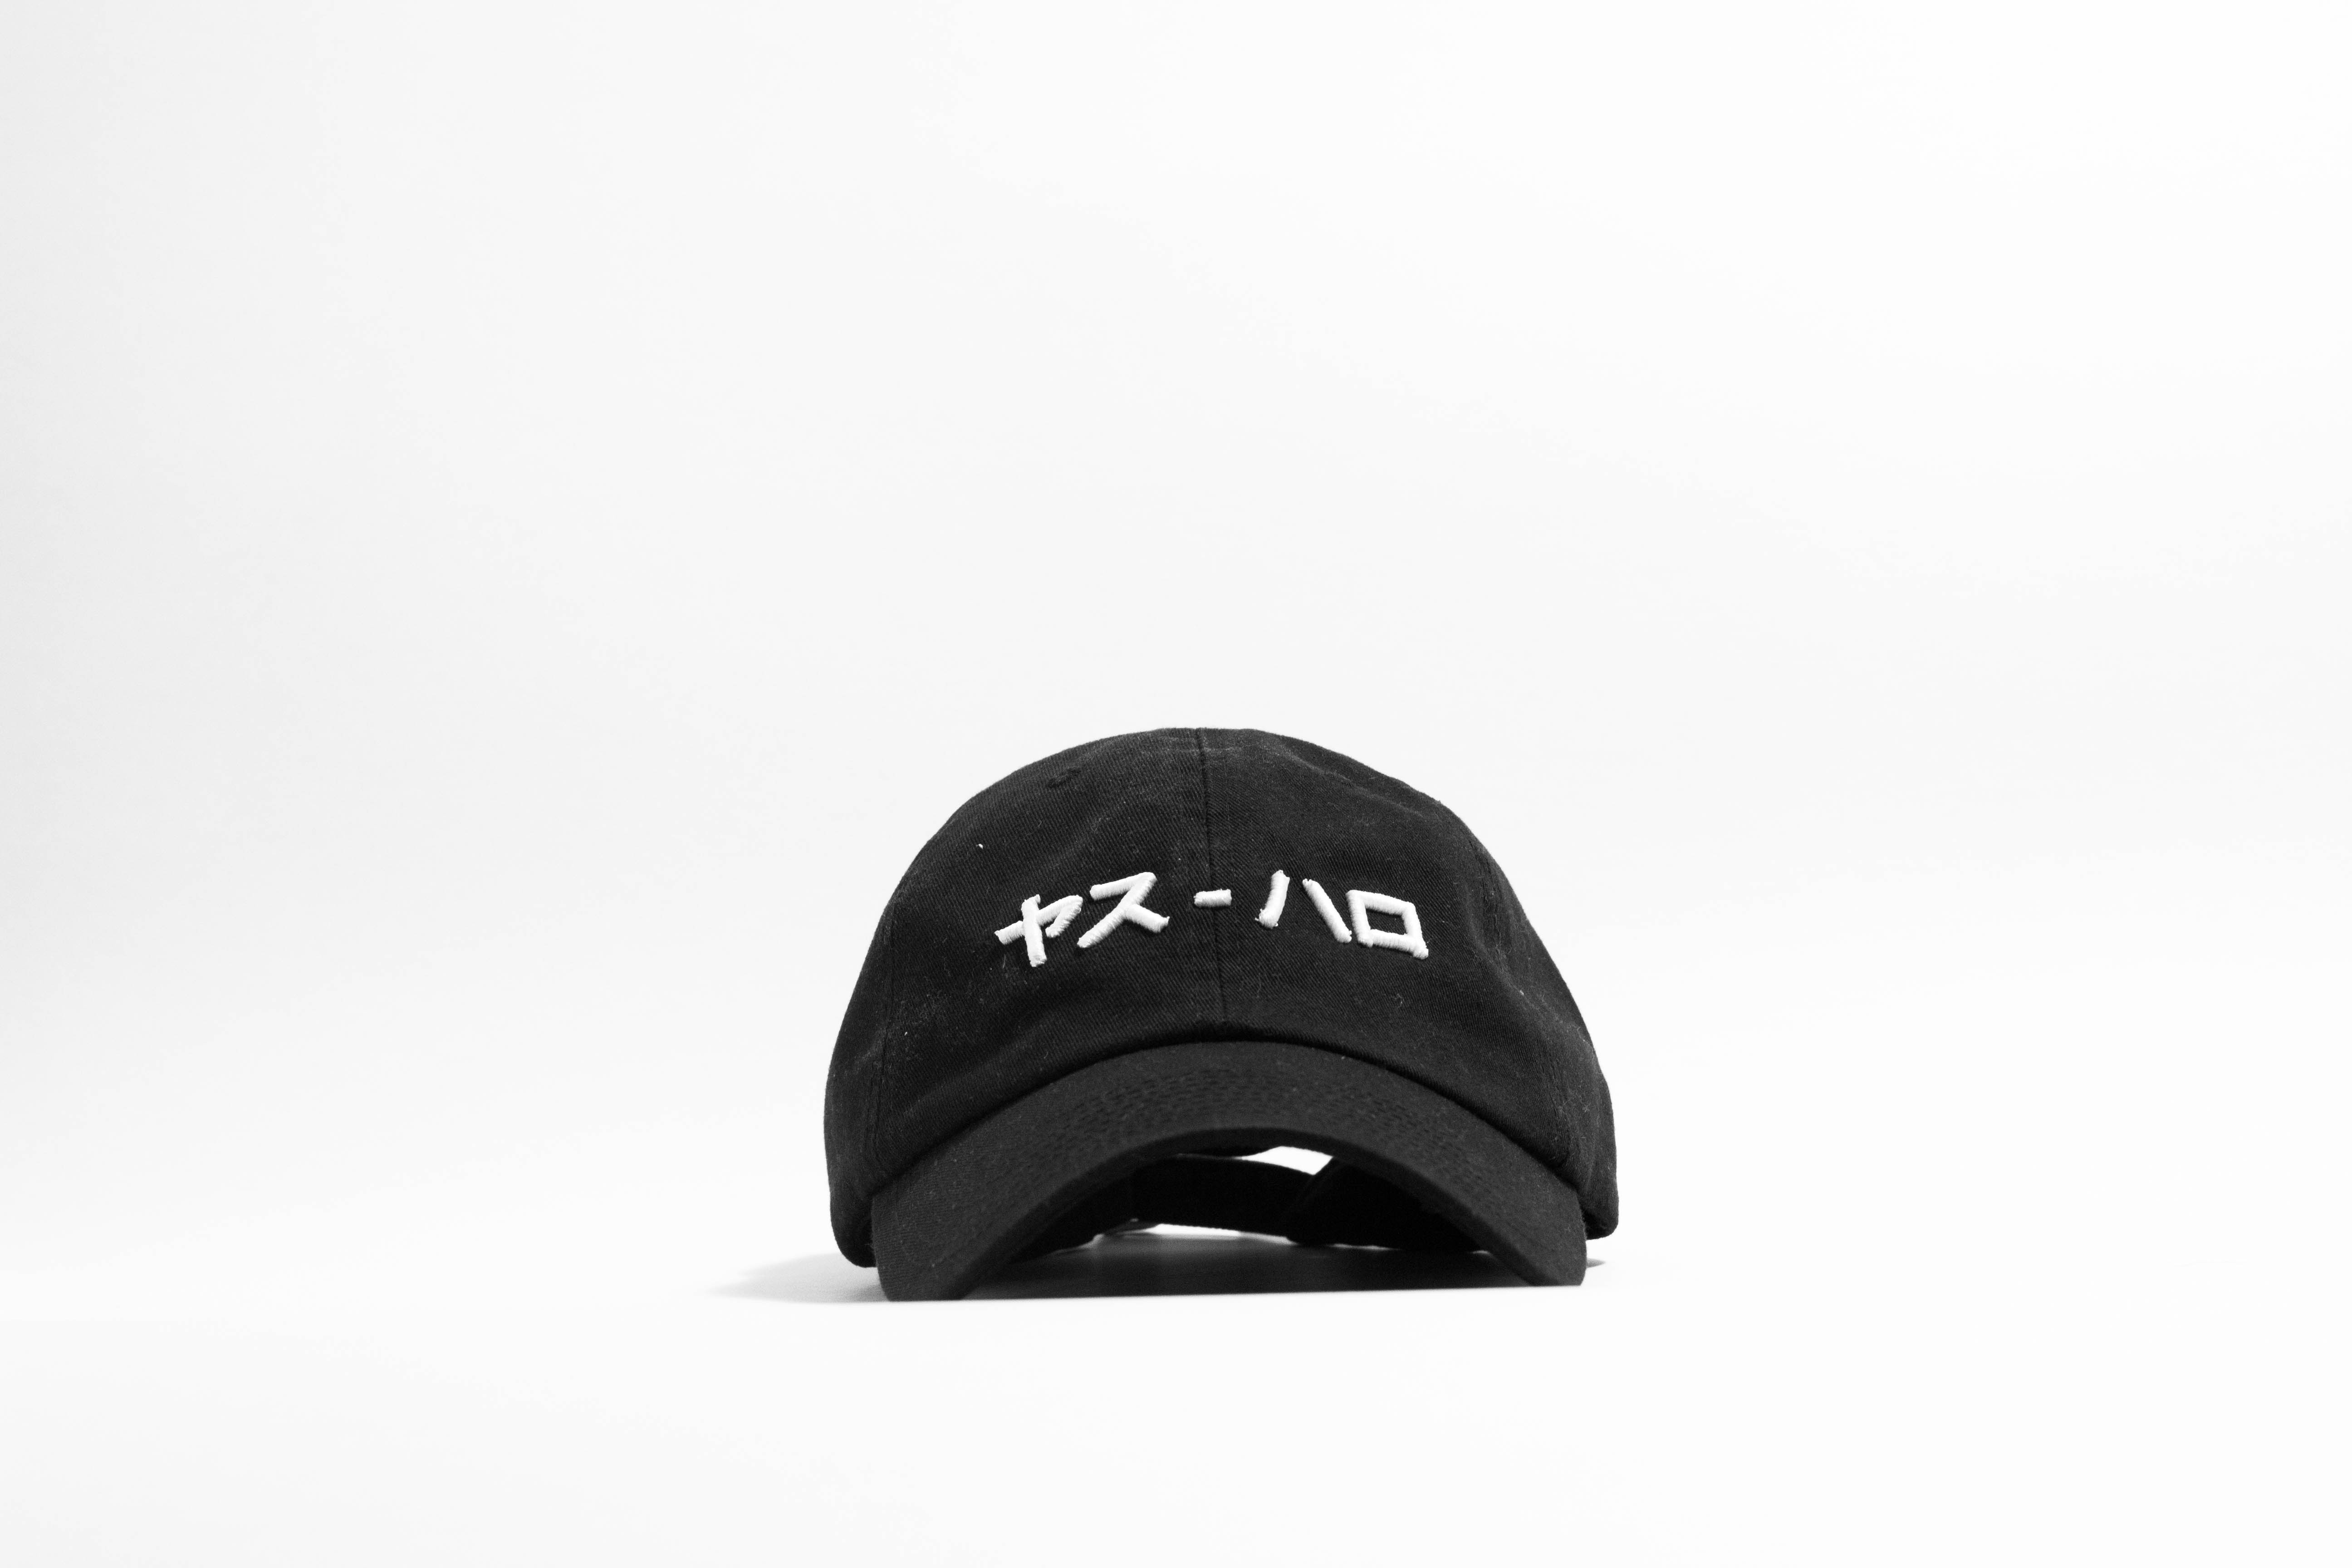 Japanese Dad Hat · yas hallo · Online Store Powered by Storenvy 9e092077d1be